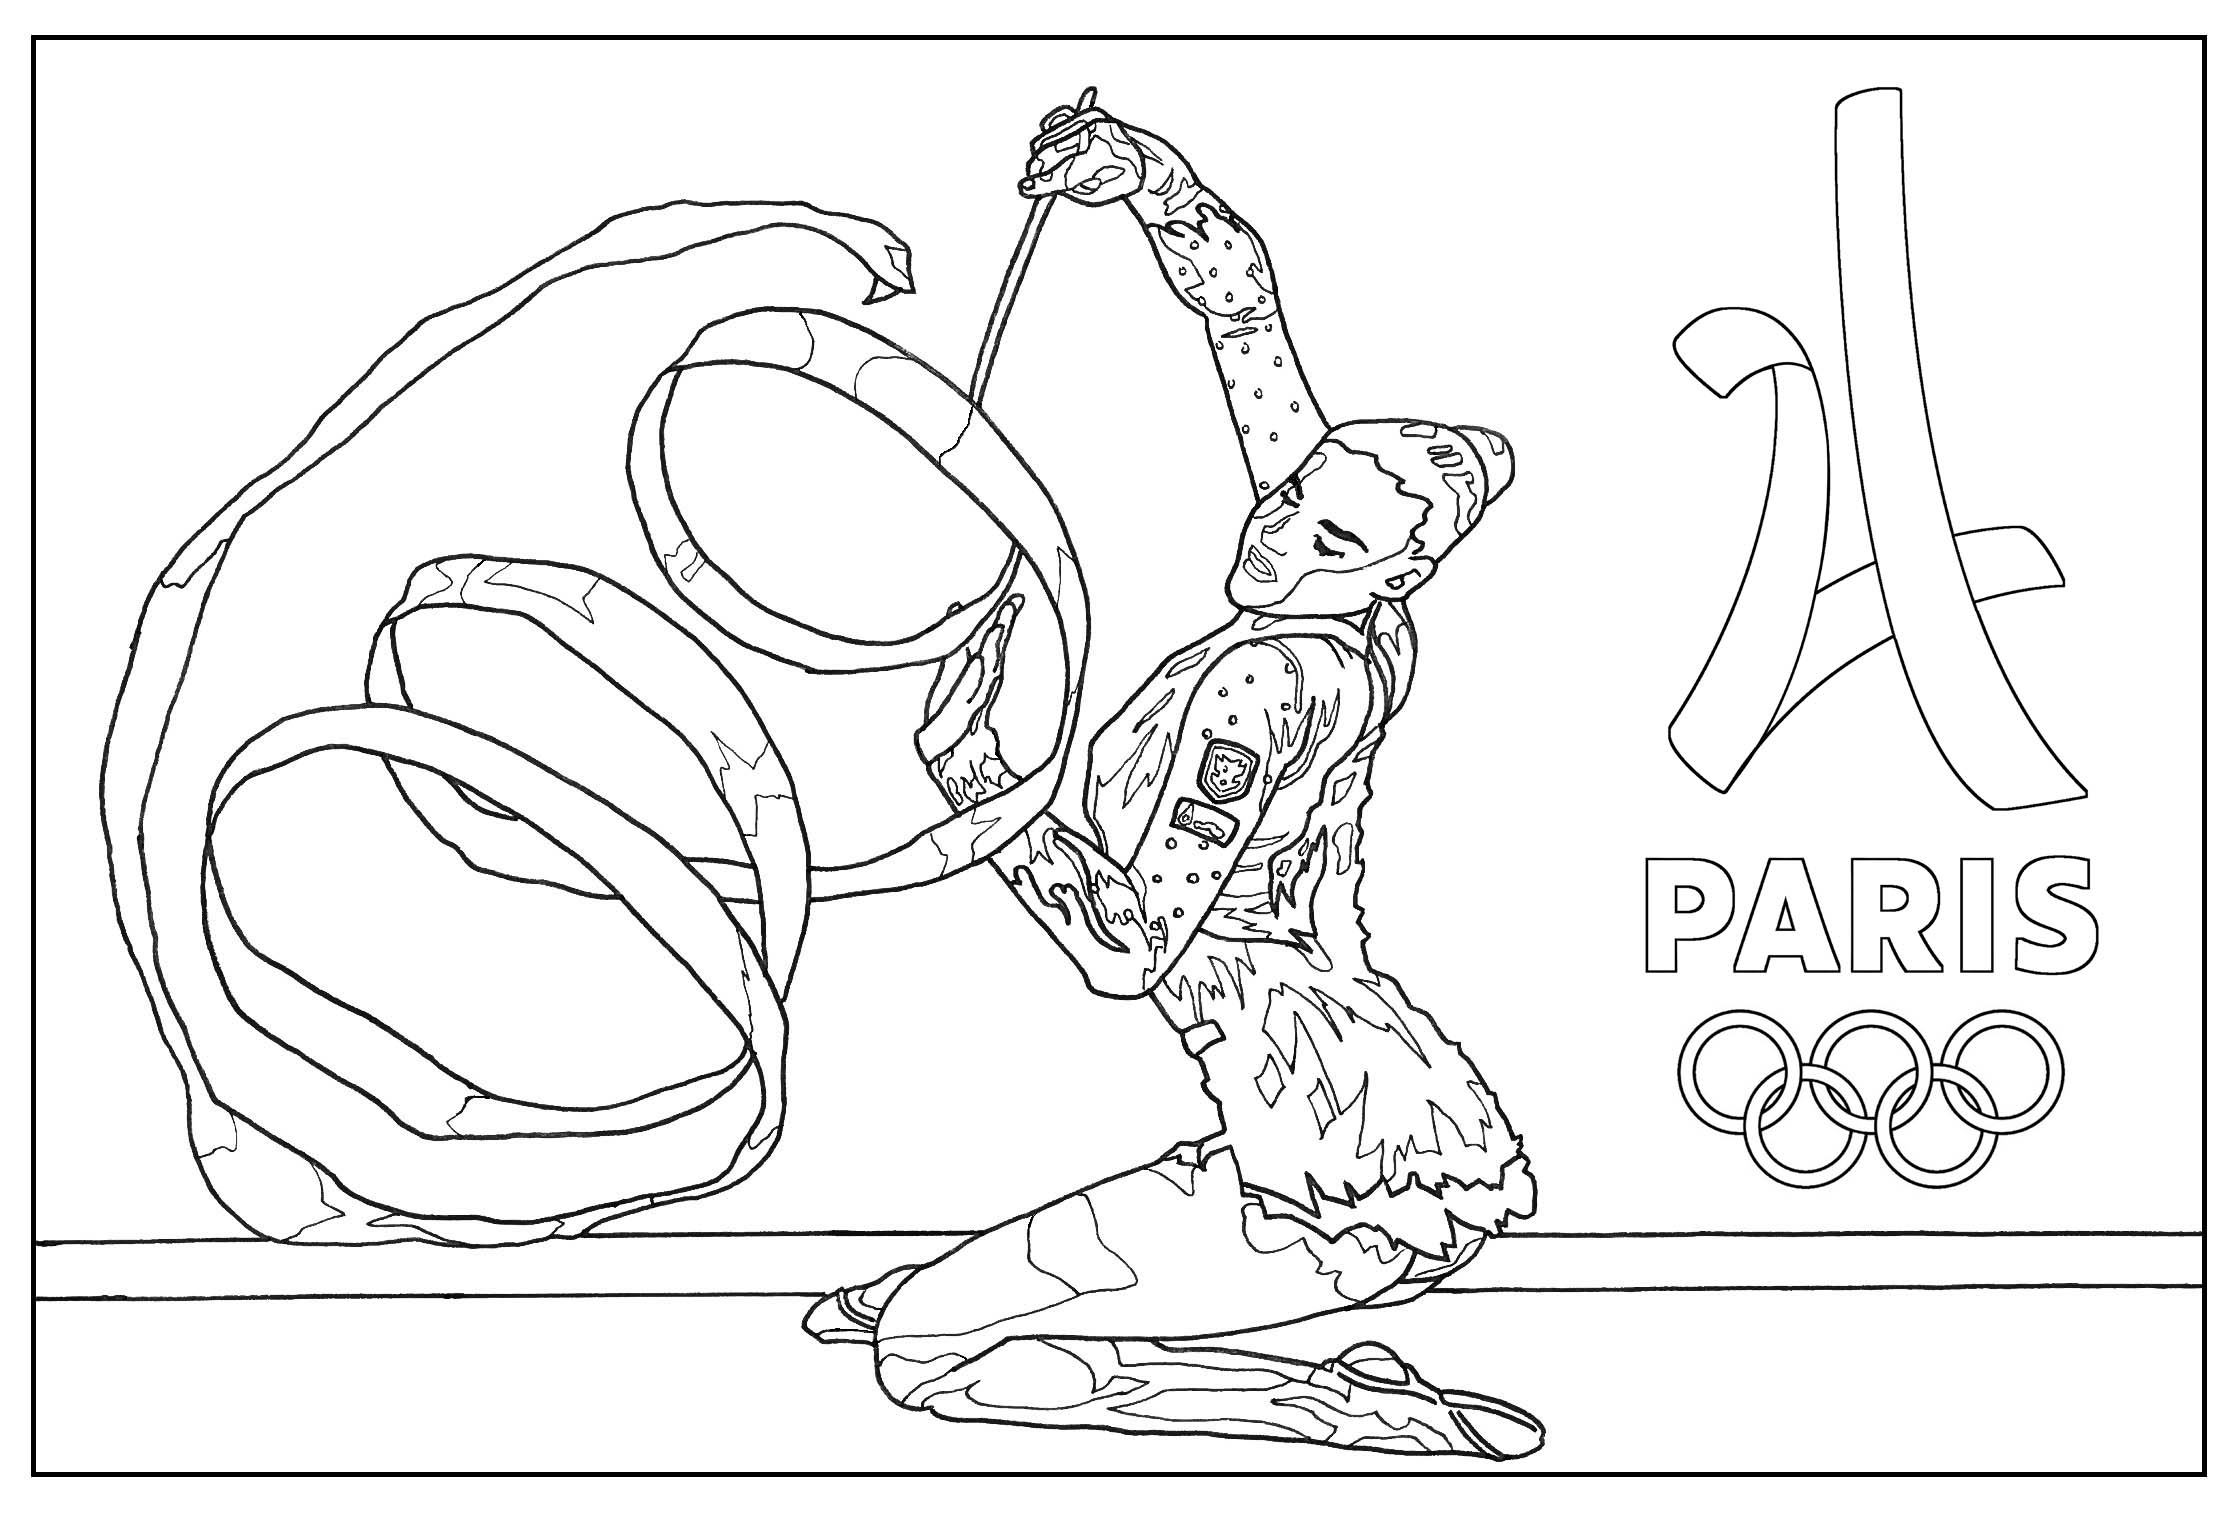 Olympic Games Gymnastic Paris 2024 Olympic & Sport Adult to Print Of Olympic Swimming Coloring Pages Best Coloring Pages Games Image Printable